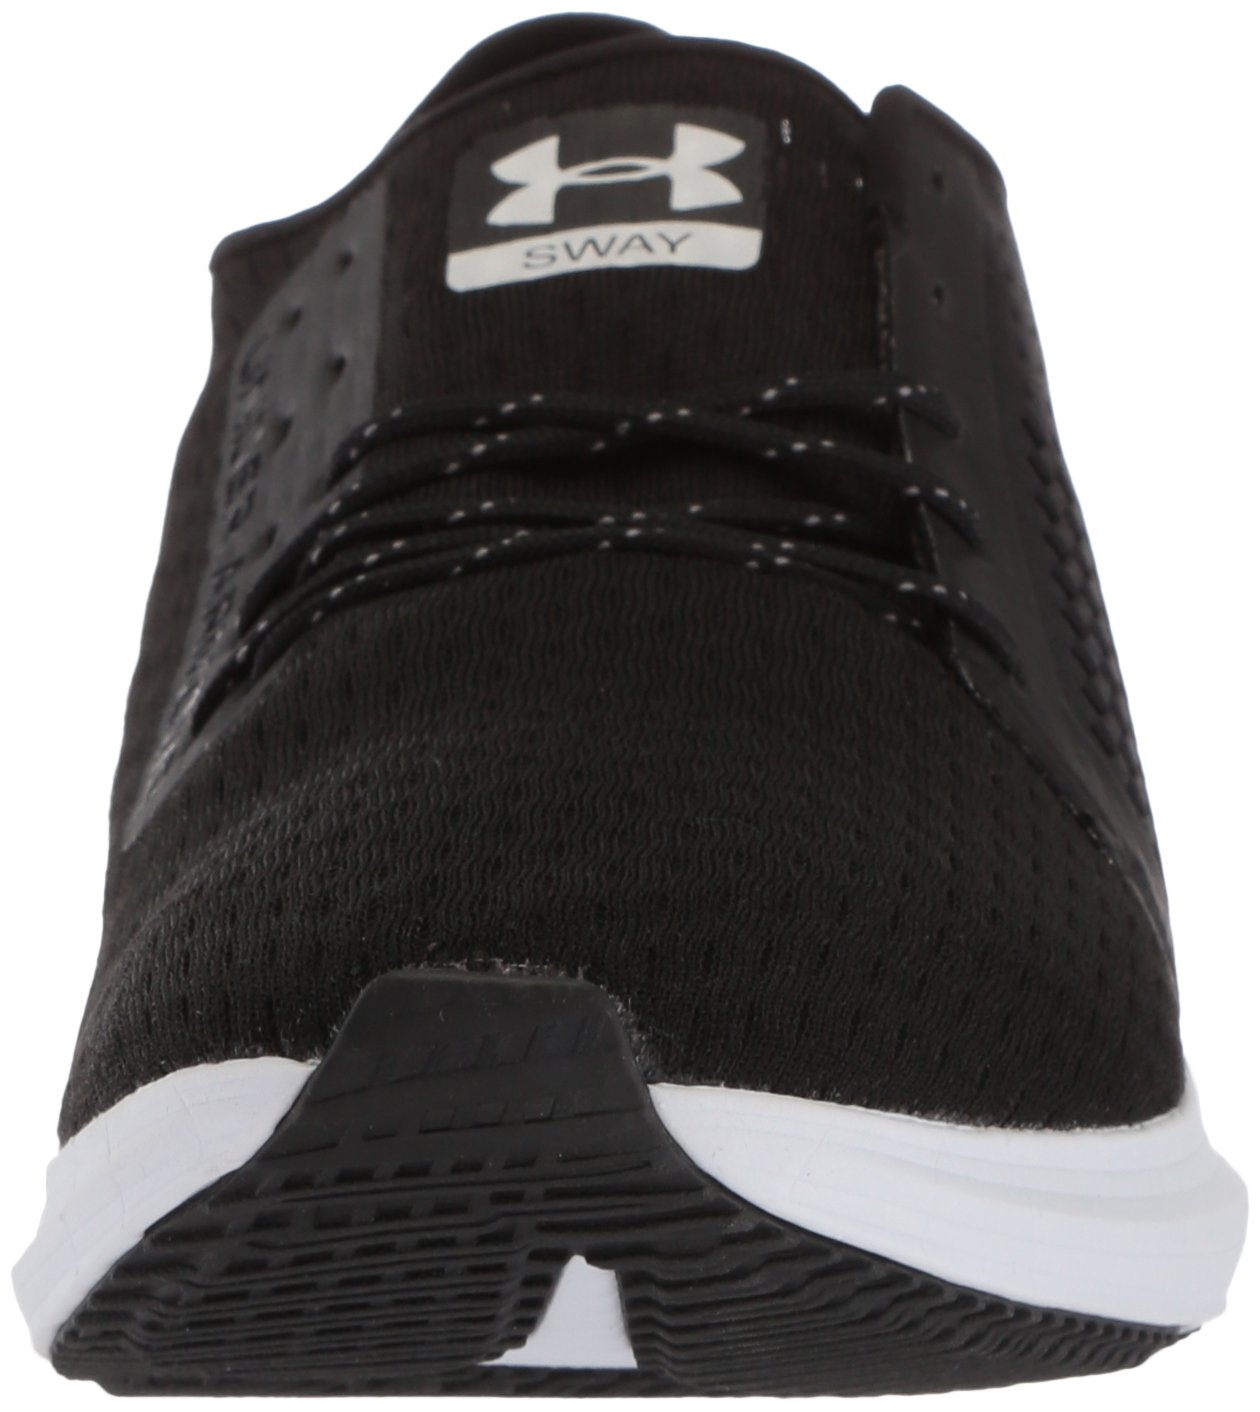 Under Armour Women's Sway Running Shoe B071HN2QFF 9.5 M US|Black (001)/White